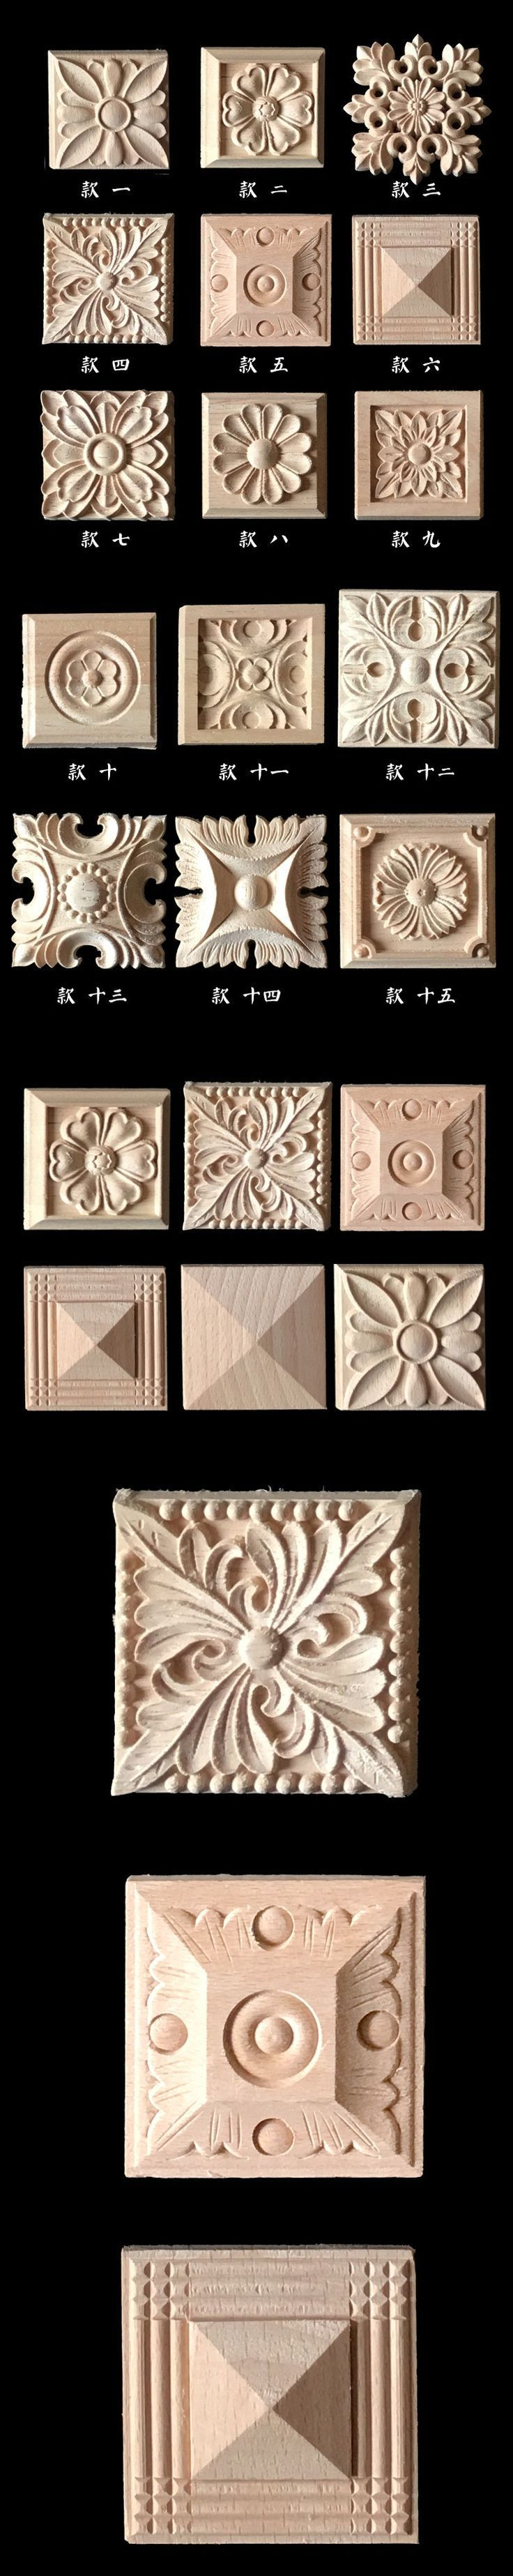 Wood carving applique 5pcs , Europe vintage nautical home decor ,Furniture cabinet door Solid wood crafts flower alphabet carve $25.95